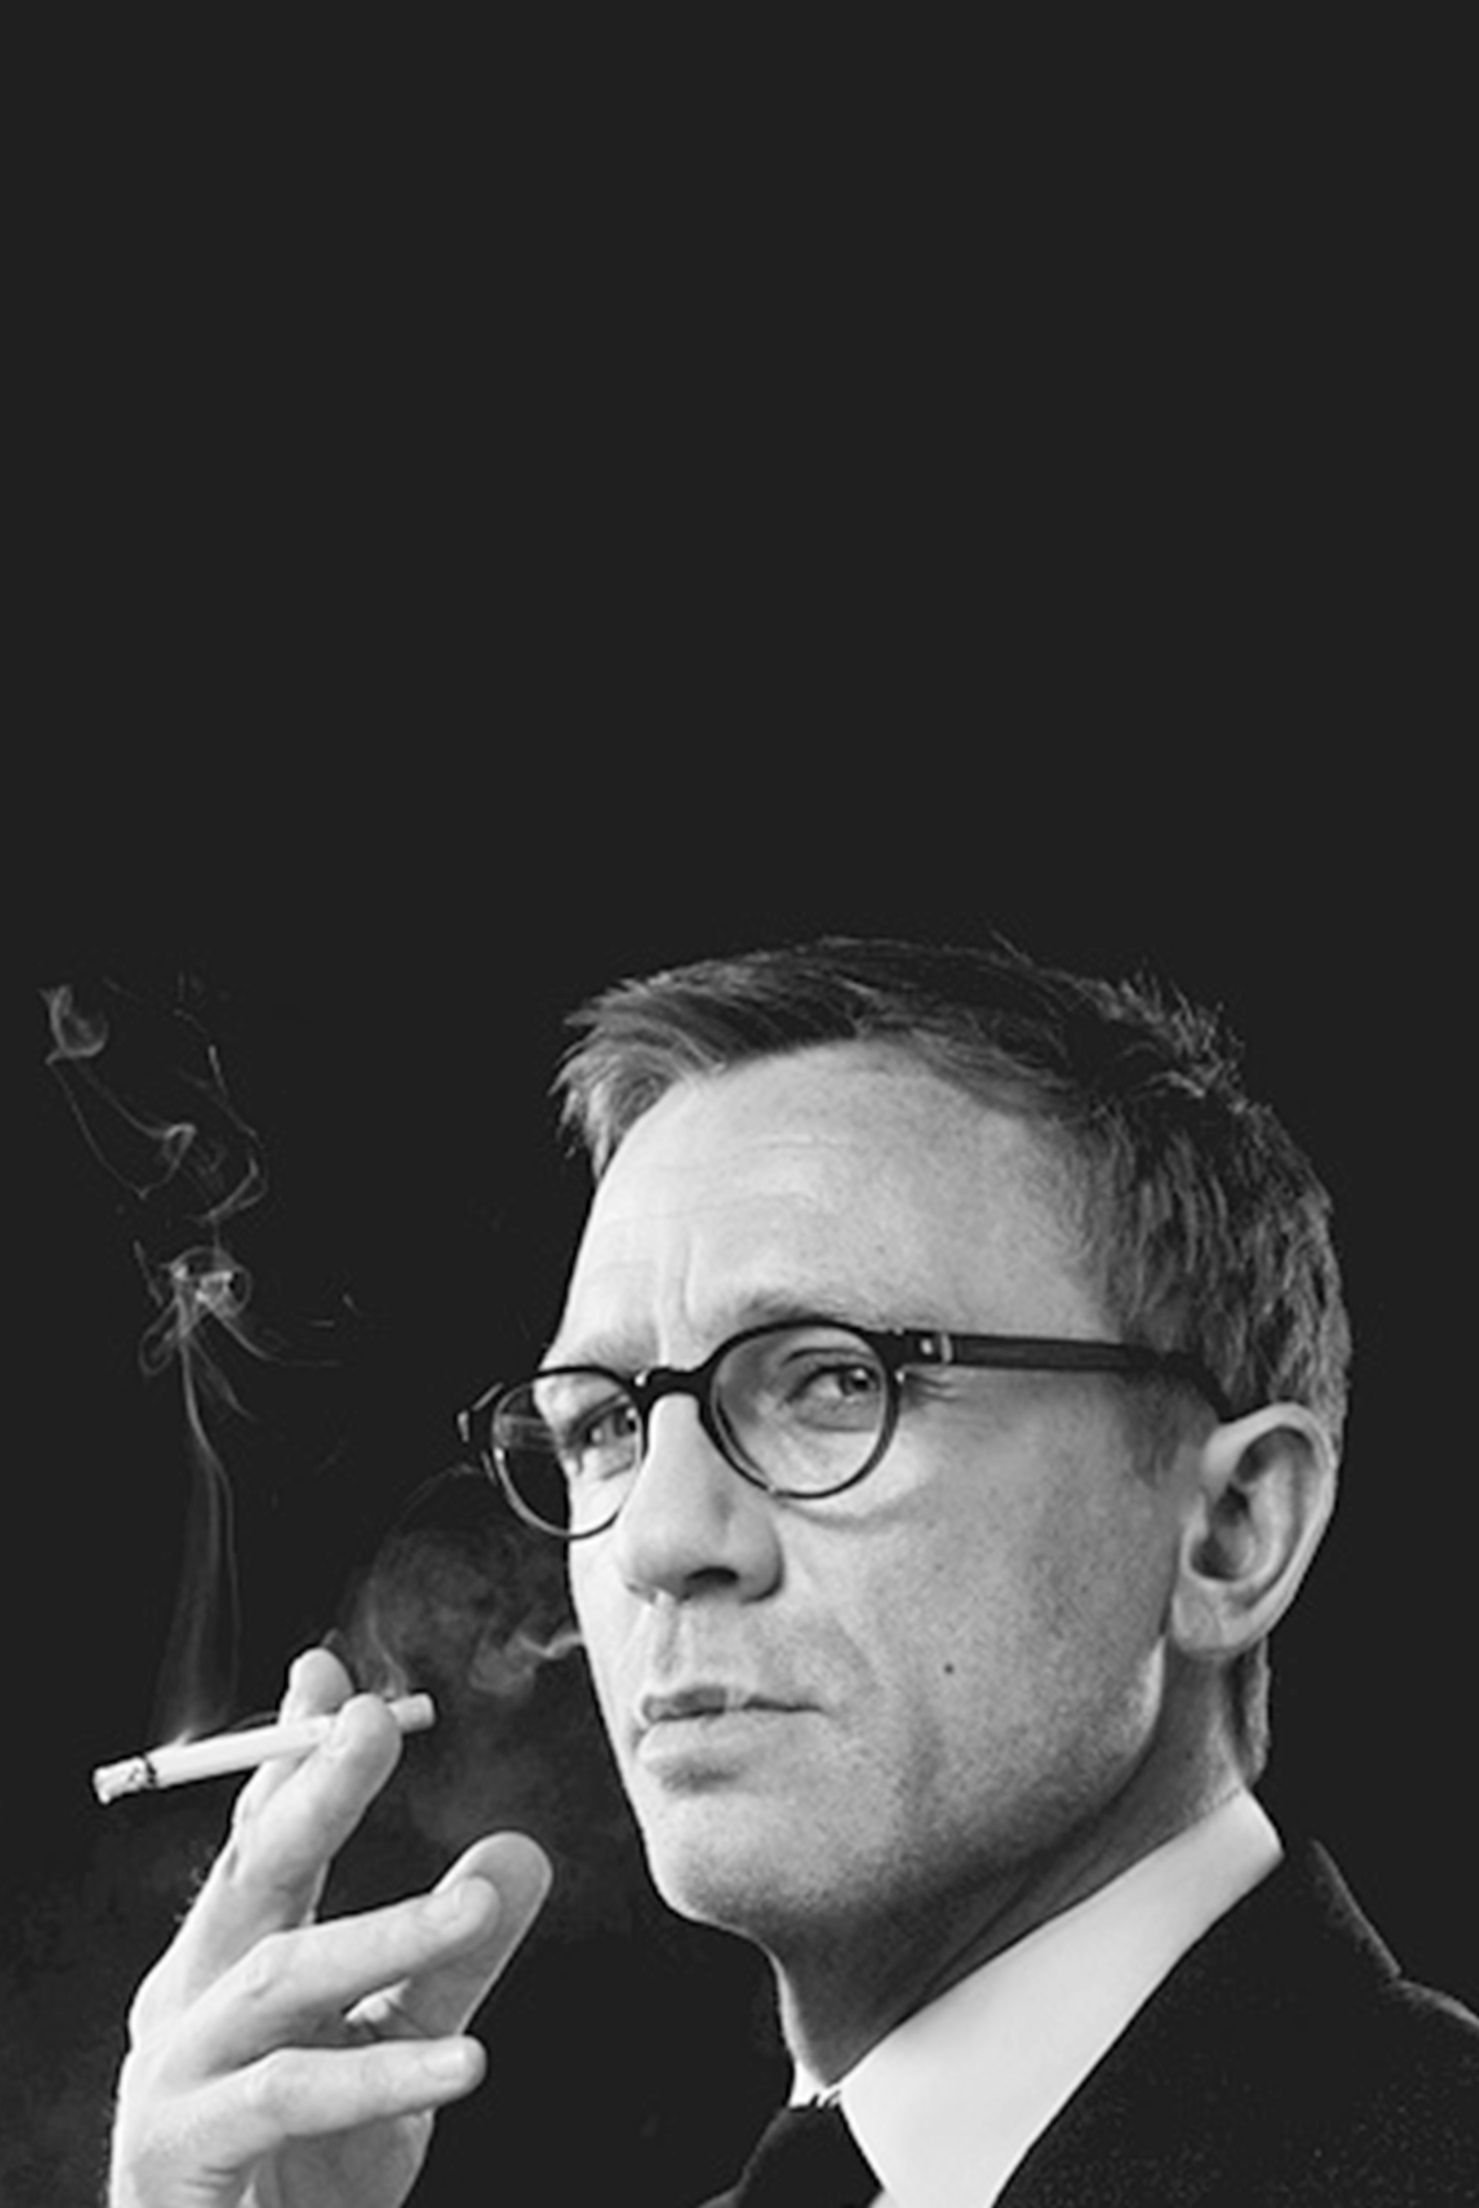 Daniel Craig smoking a cigarette (or weed)